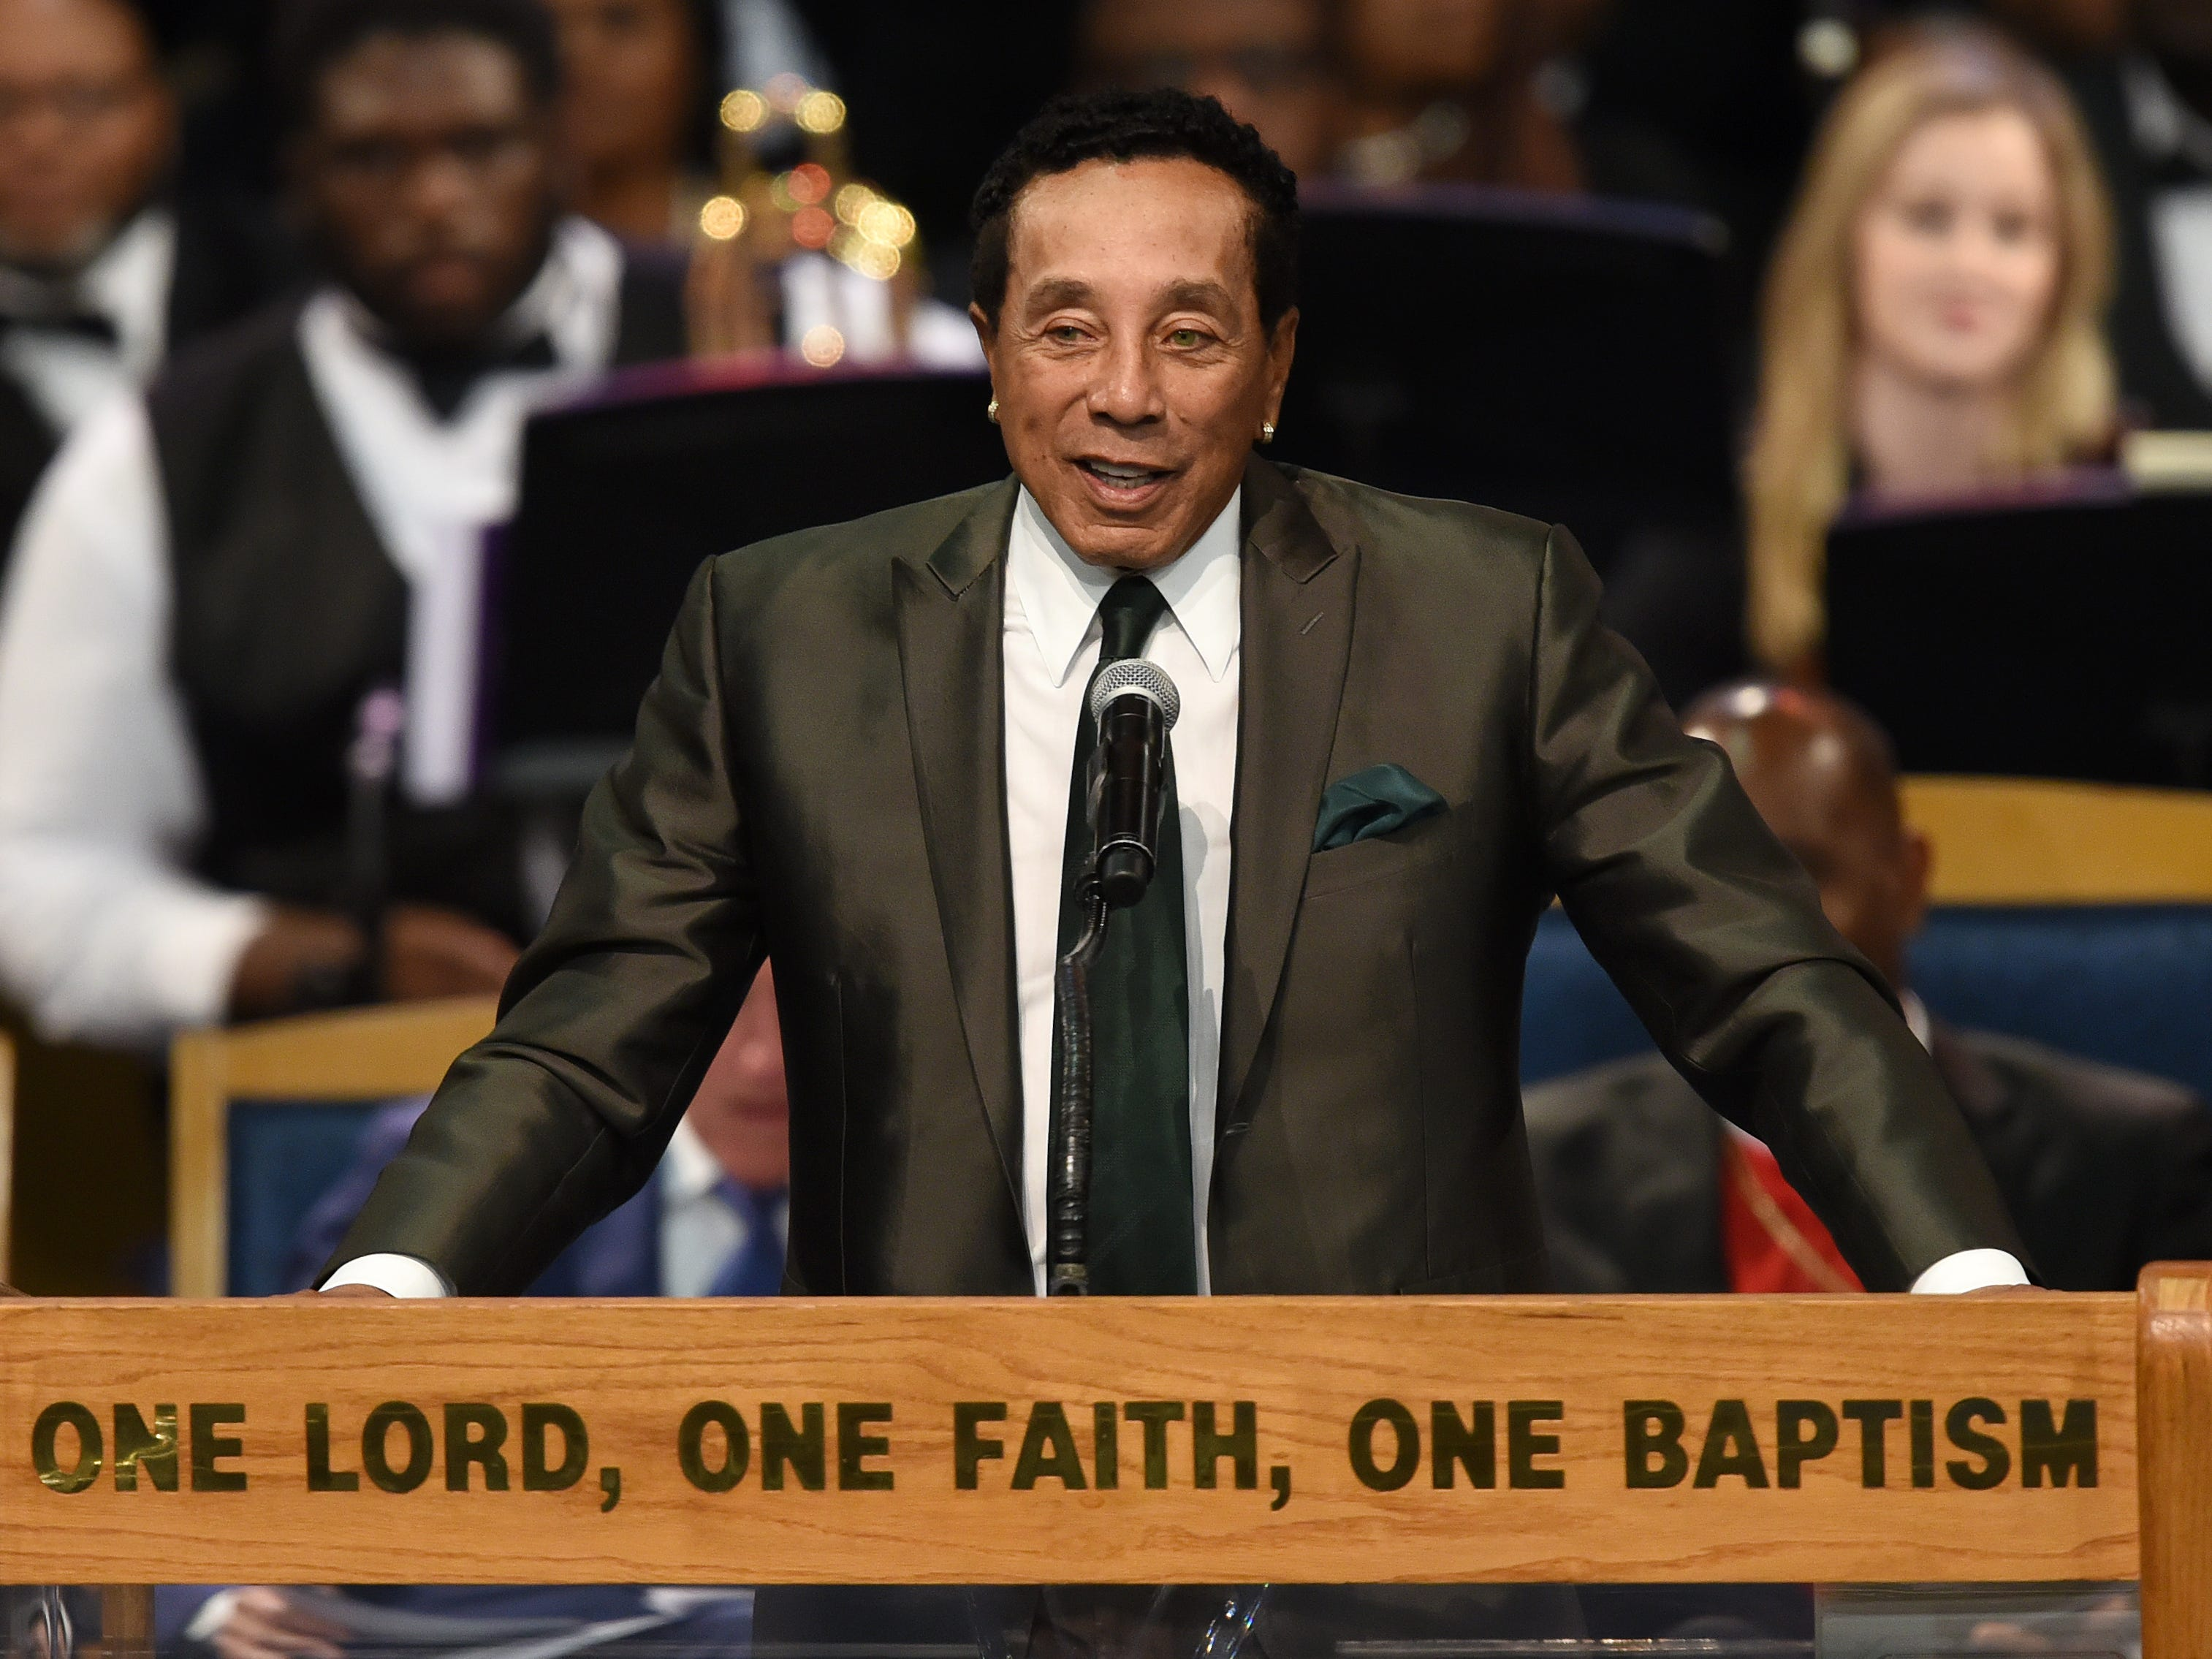 Smokey Robinson shares his memories of Aretha Franklin during her memorial service.